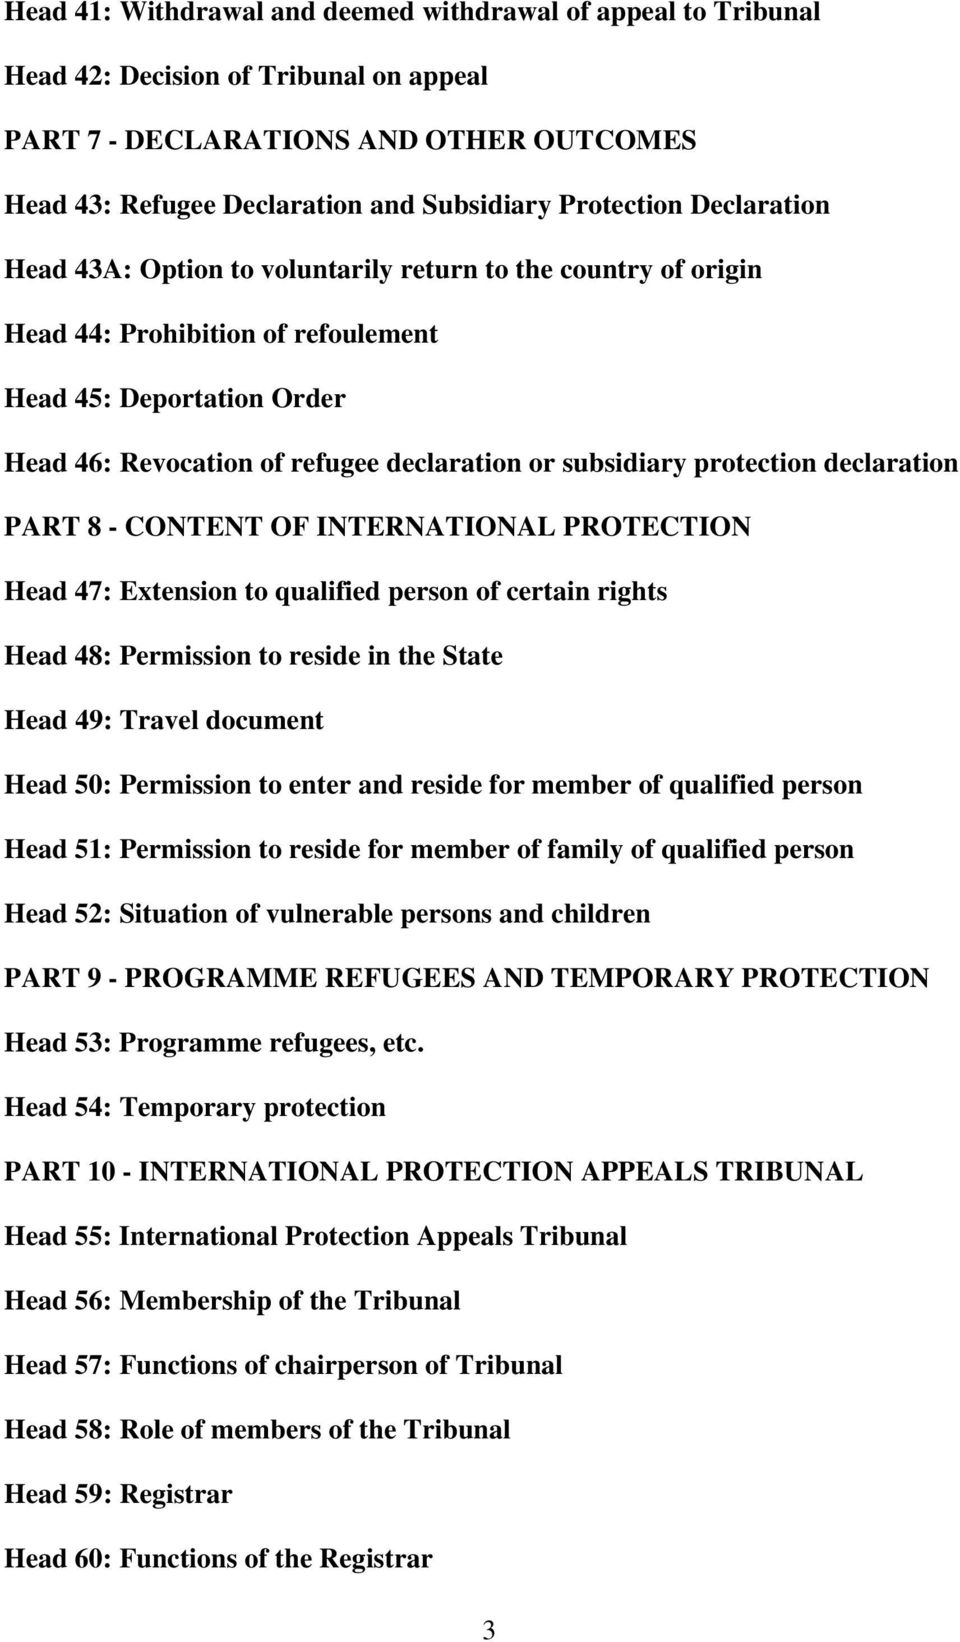 protection declaration PART 8 - CONTENT OF INTERNATIONAL PROTECTION Head 47: Extension to qualified person of certain rights Head 48: Permission to reside in the State Head 49: Travel document Head